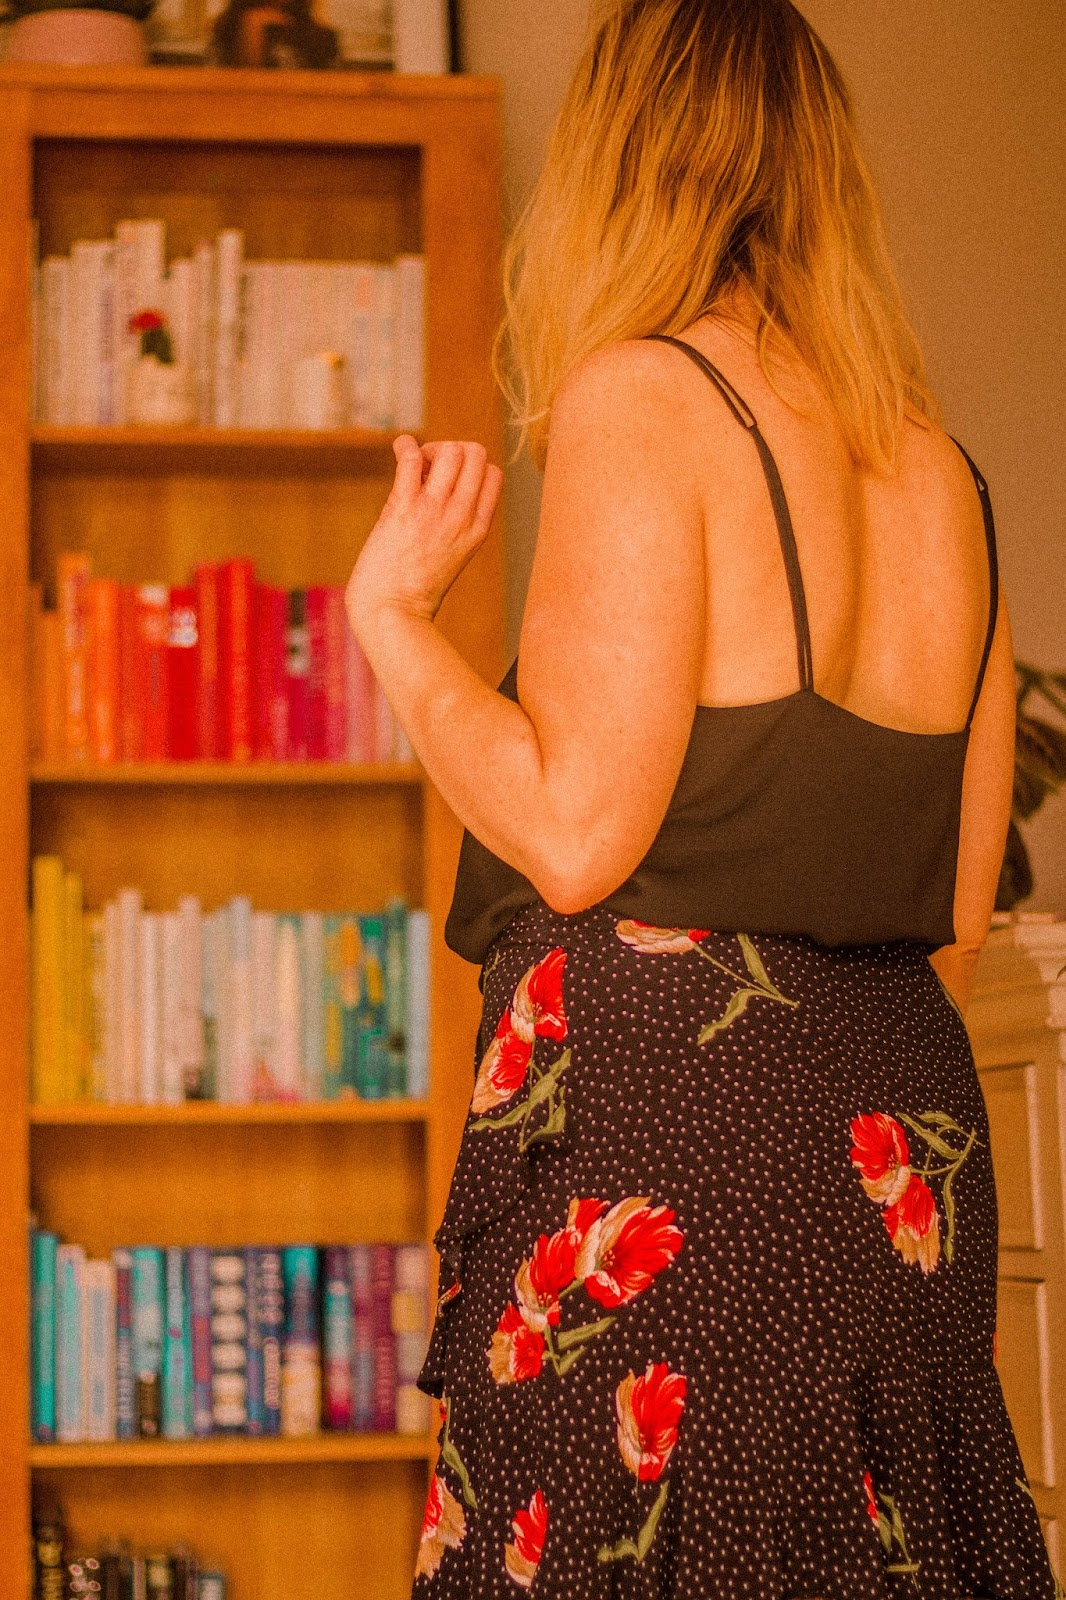 blonde girl looking at bookshelf